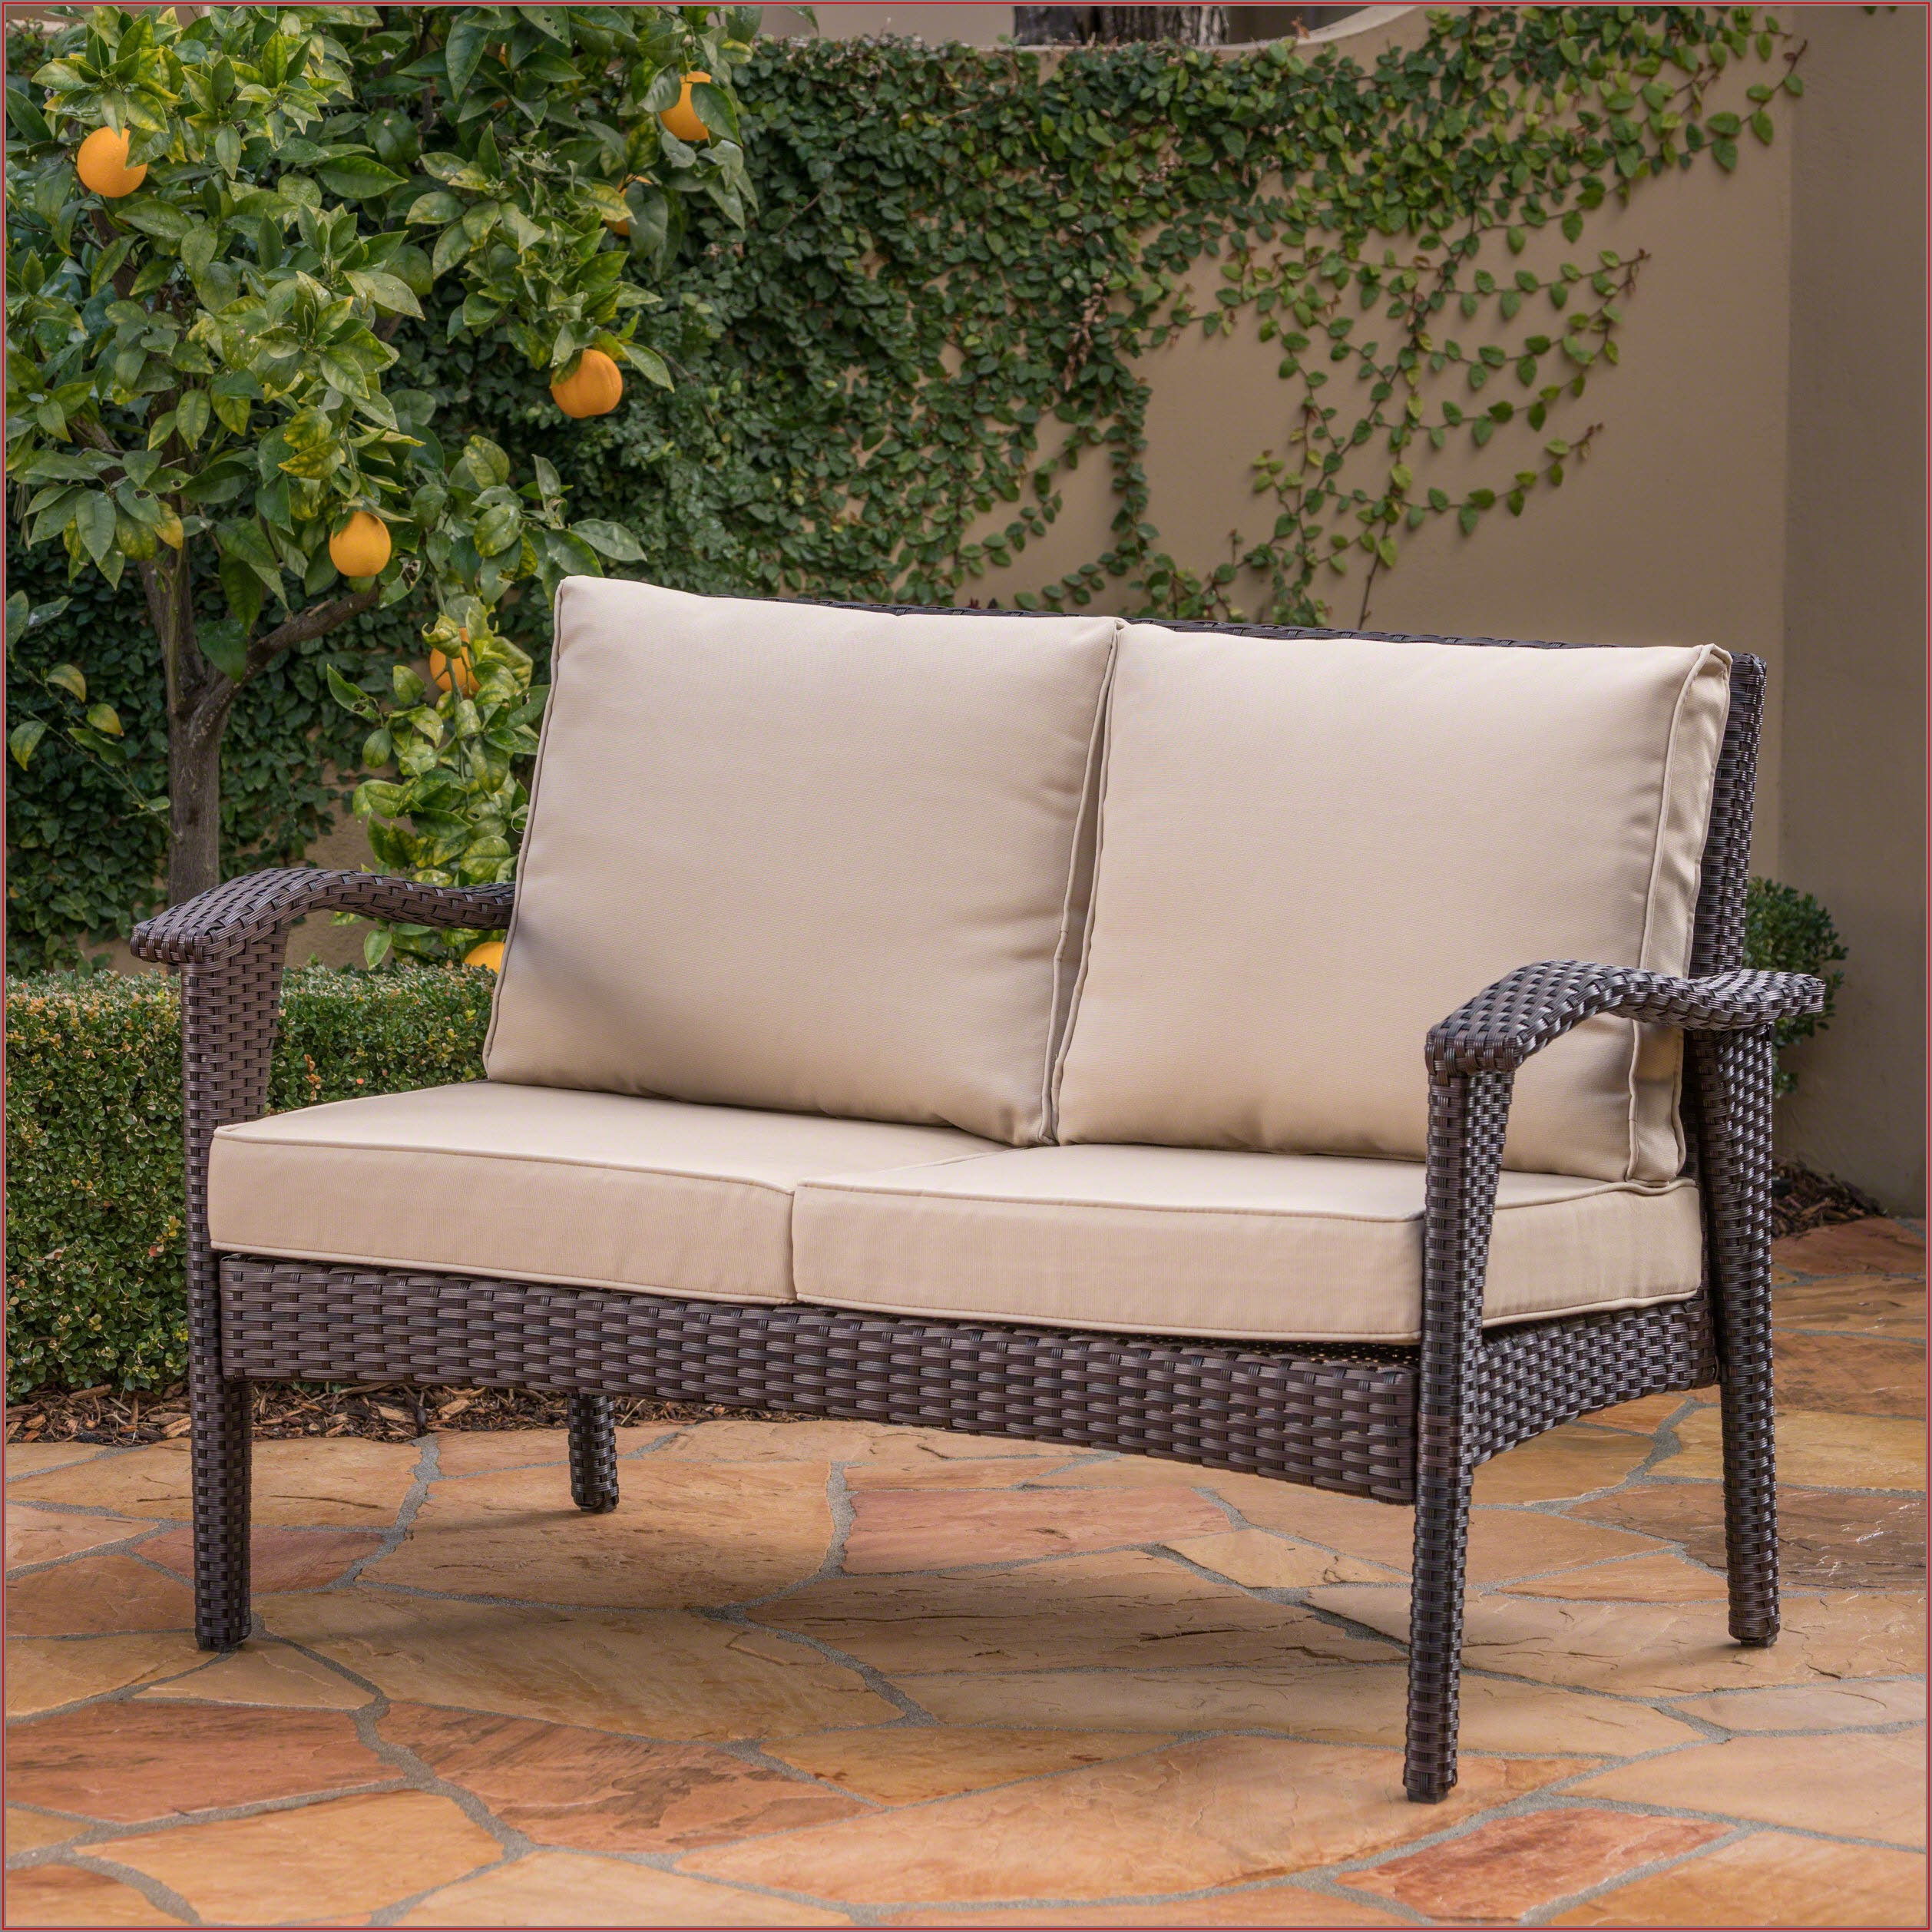 Brown Wicker Patio Loveseat